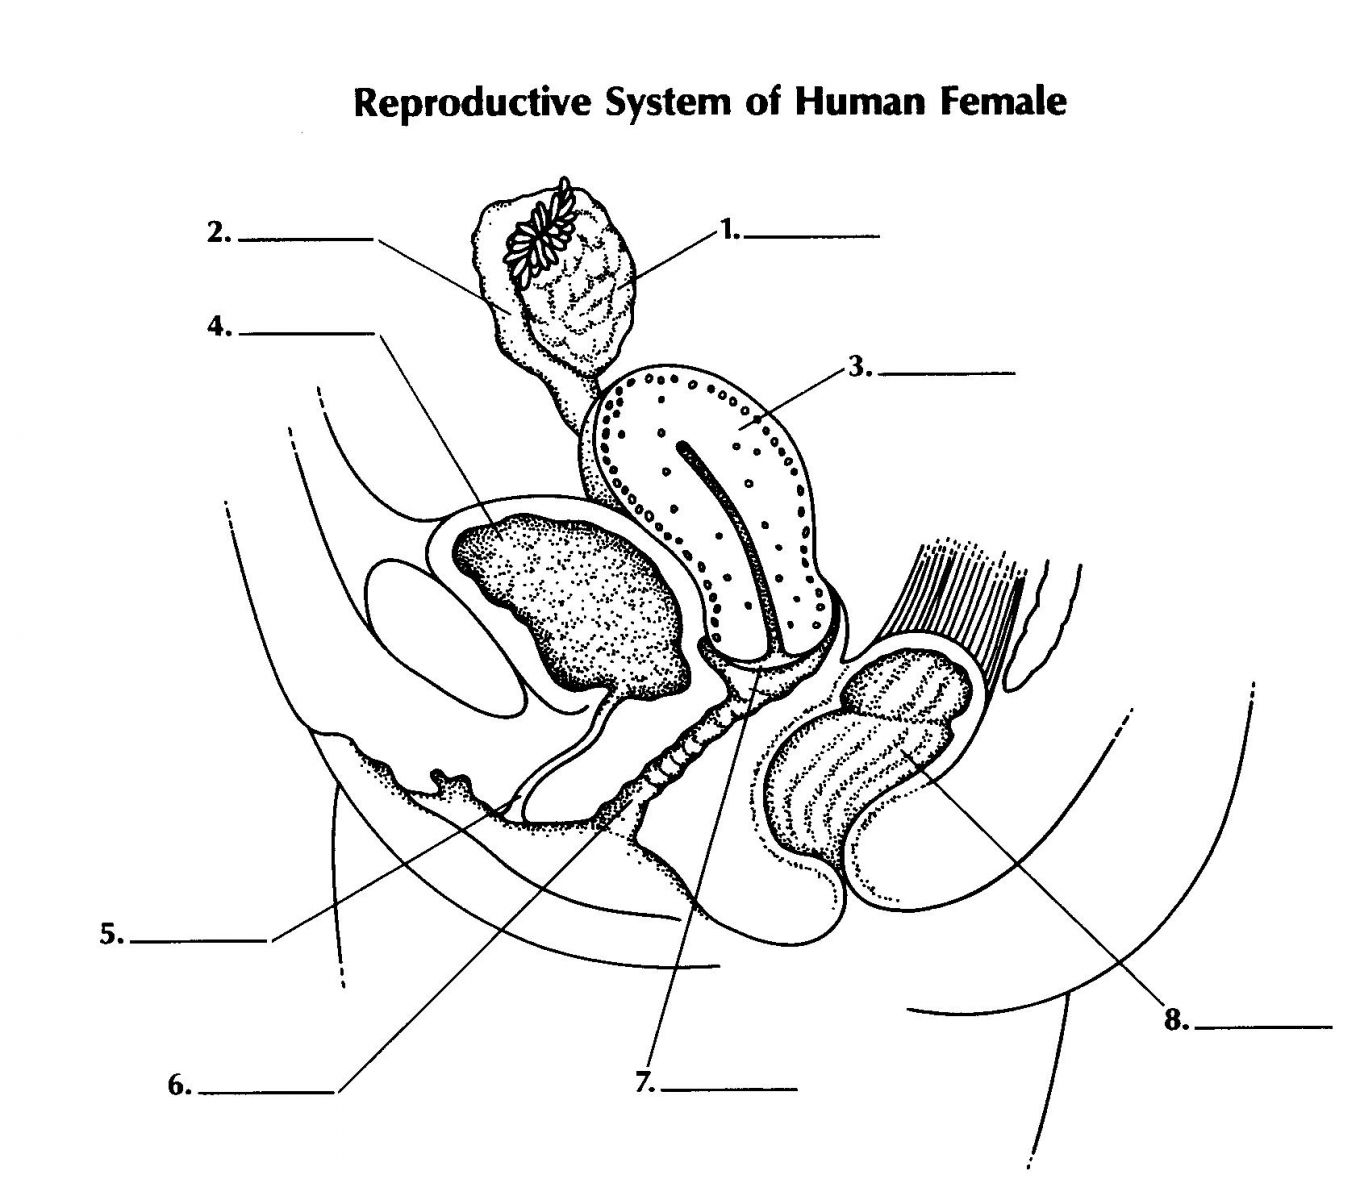 Female Reproductive System Diagram Reproductive System Of Female Proprofs Quiz